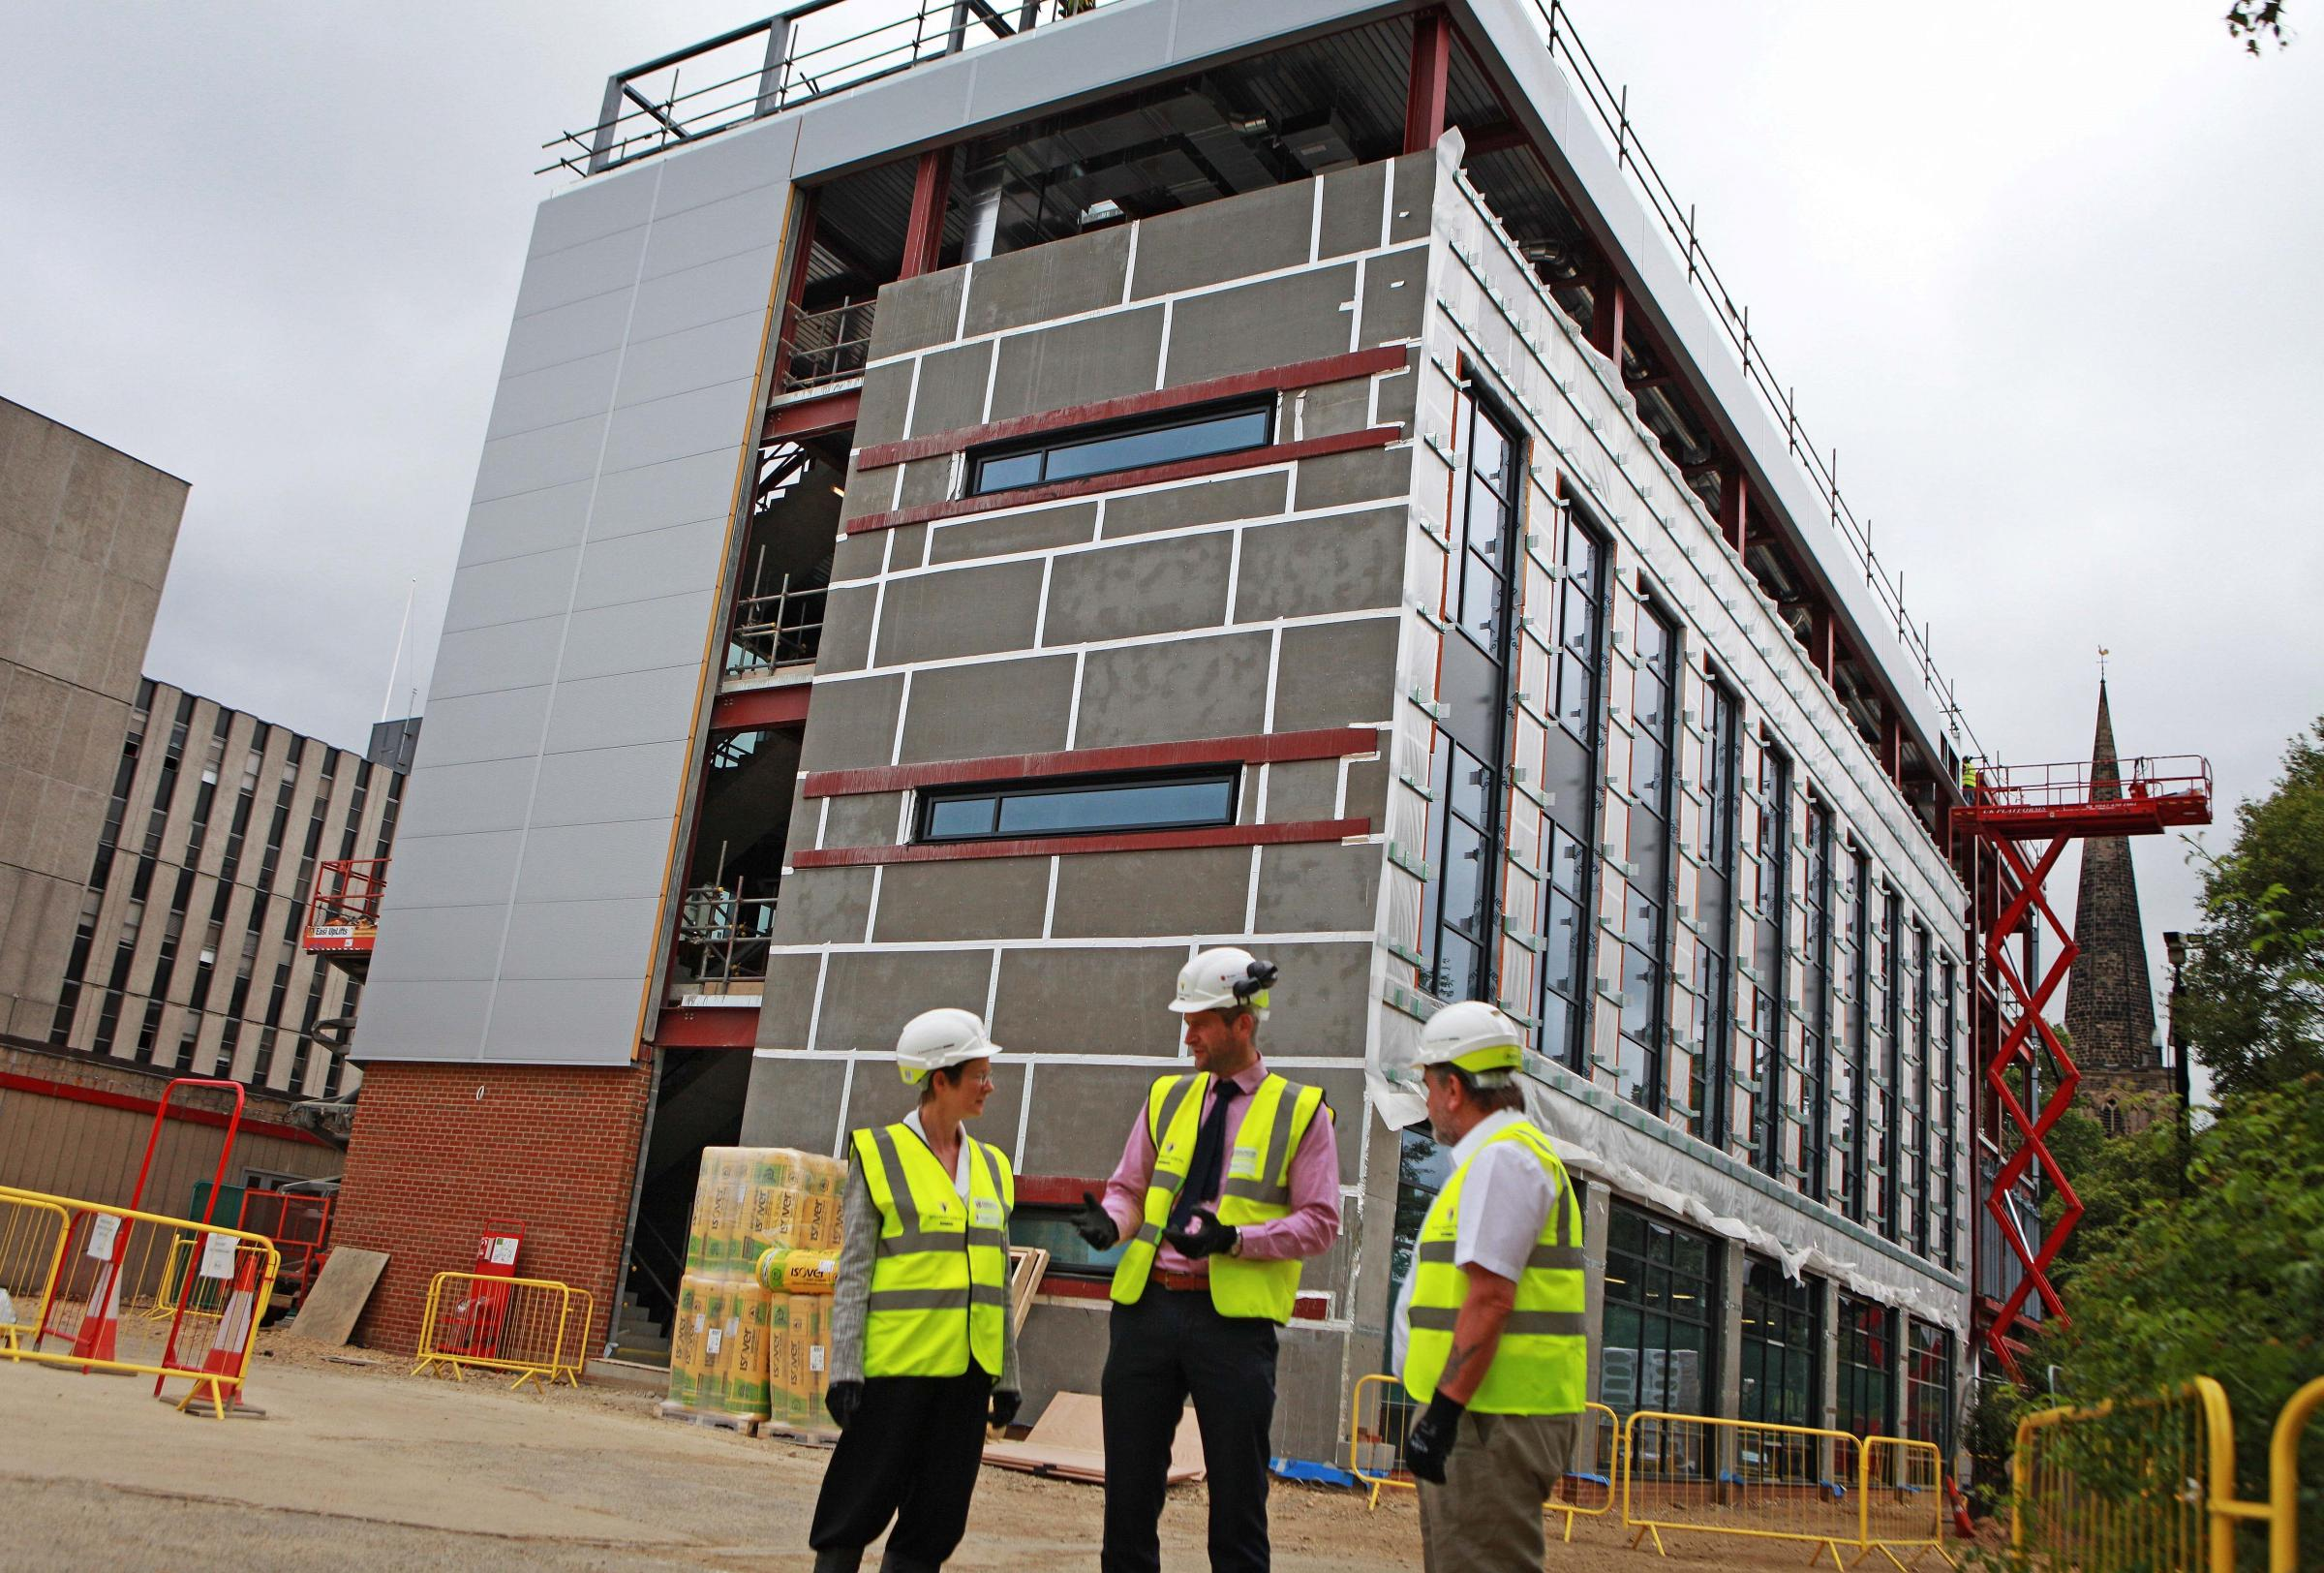 BUILDING SITE: The Department for Education building, in Darlington. Pictured are Darlington Borough Council chief executive, Ada Burns, with council leader, Bill Dixon, right, and Sean McNicholas, the project's senior building manager. Picture: SARAH